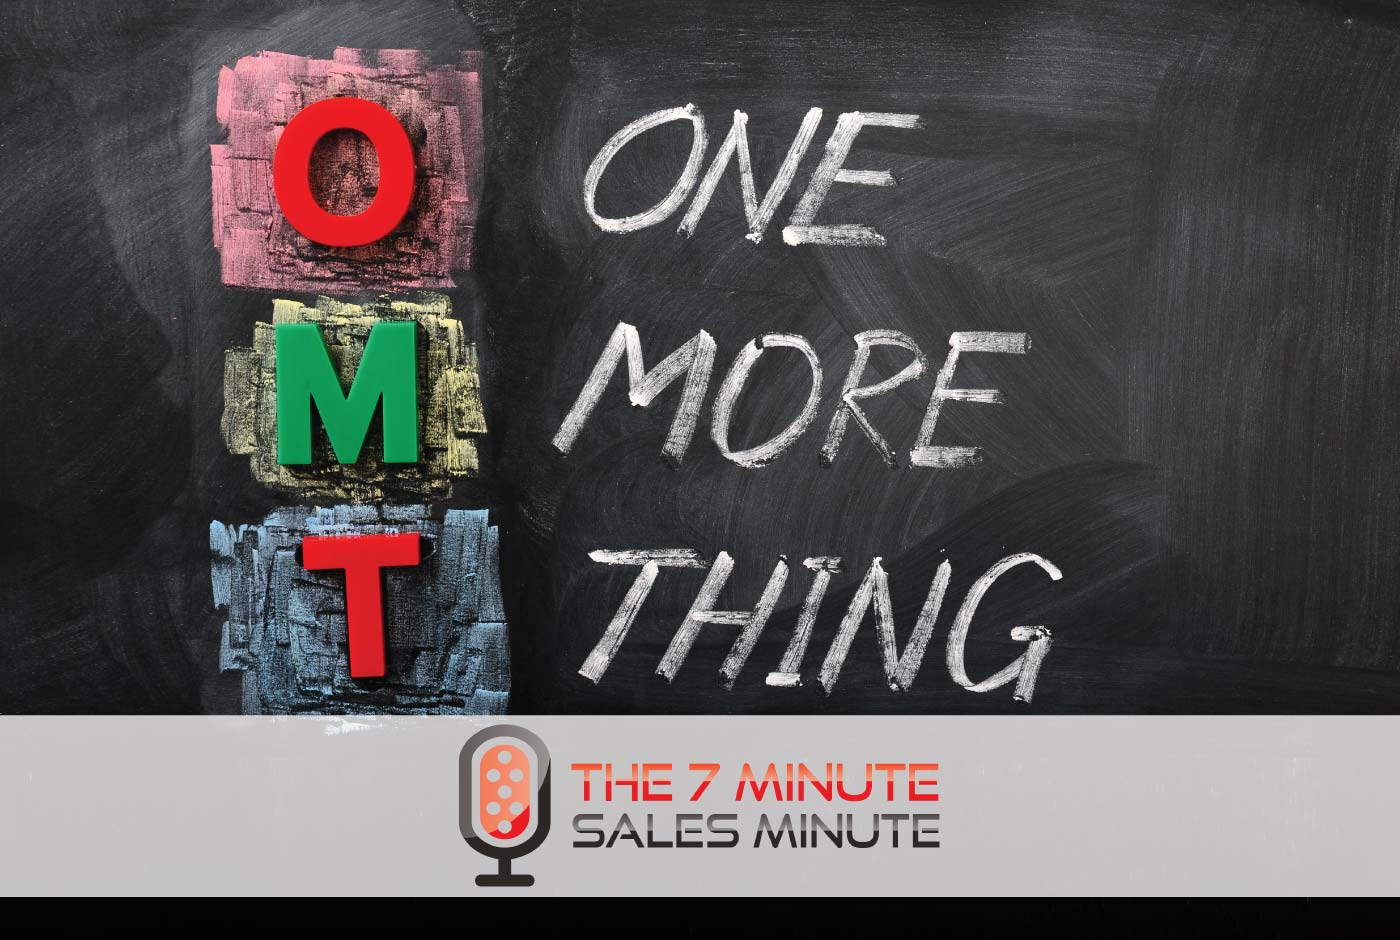 """7 Minute Sales Minute Podcast - Season 13 - Episode 4 - Bite Sized: One More Thing- Chalk board reading """"One More Thing"""""""